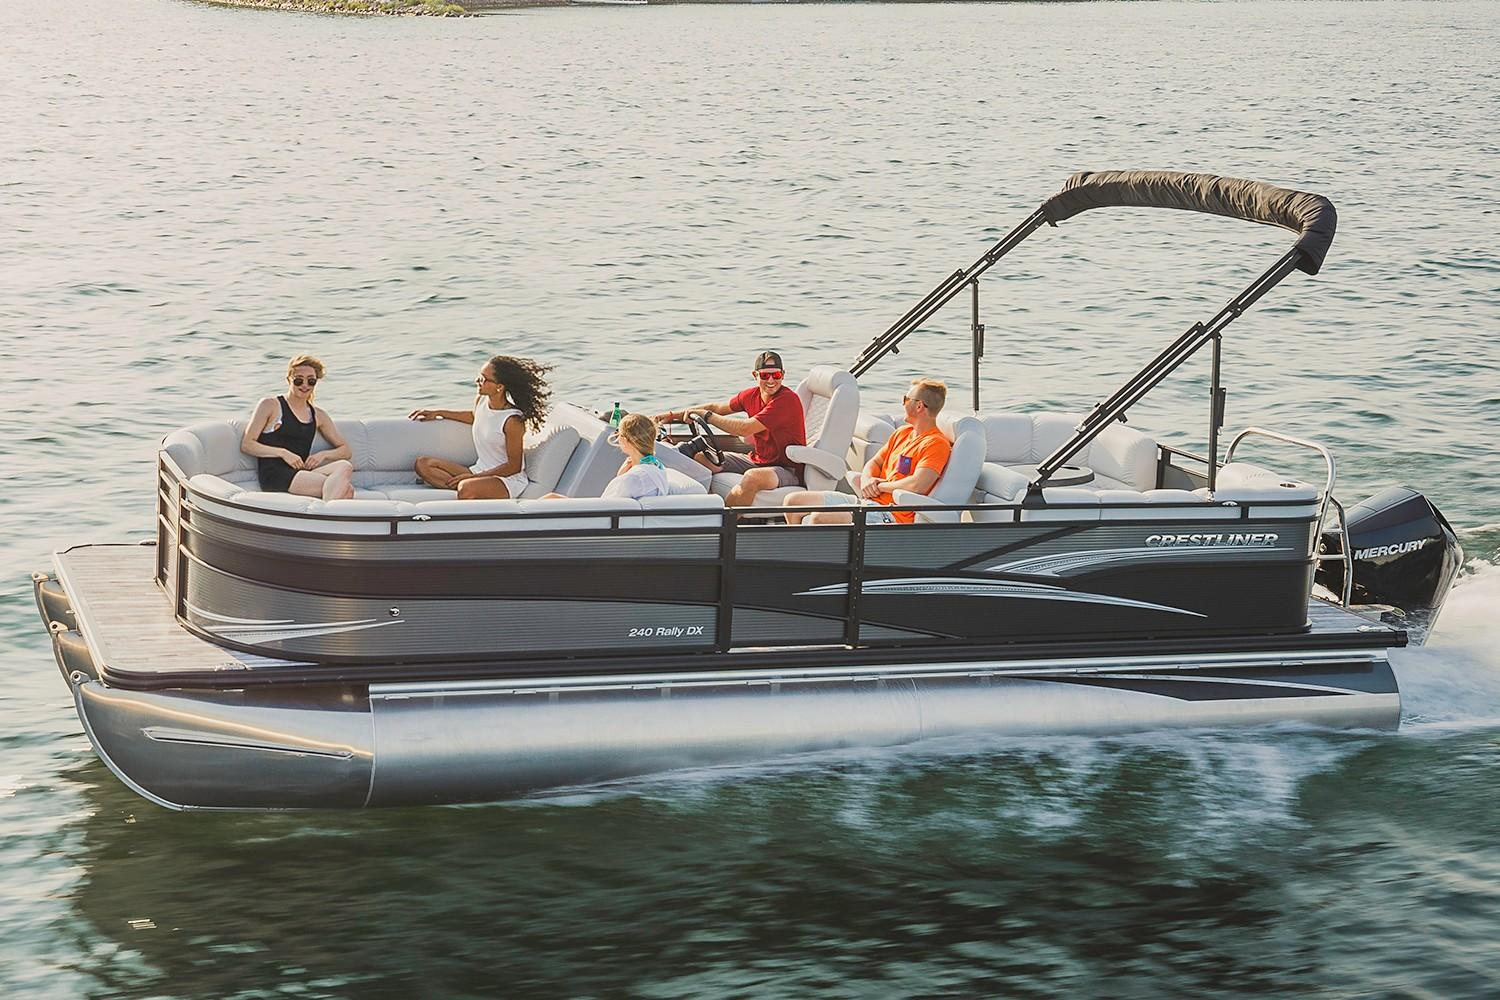 2019 Crestliner 240 Rally DX CS in Spearfish, South Dakota - Photo 1